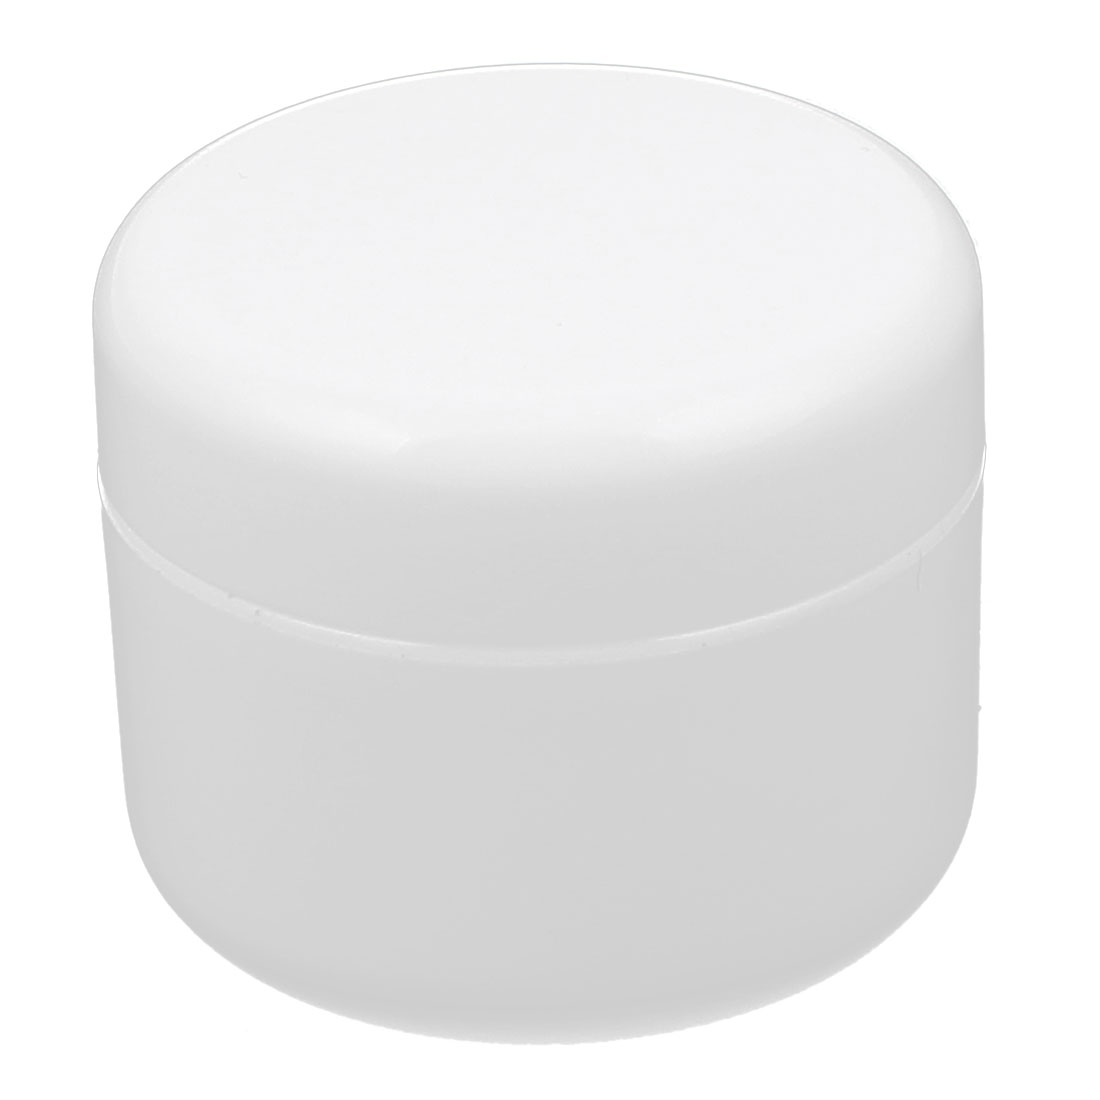 White Plastic Cosmetic Empty Jar Pot Face Cream Eyeshadow Moisturizer Holder Container 50g for Lady